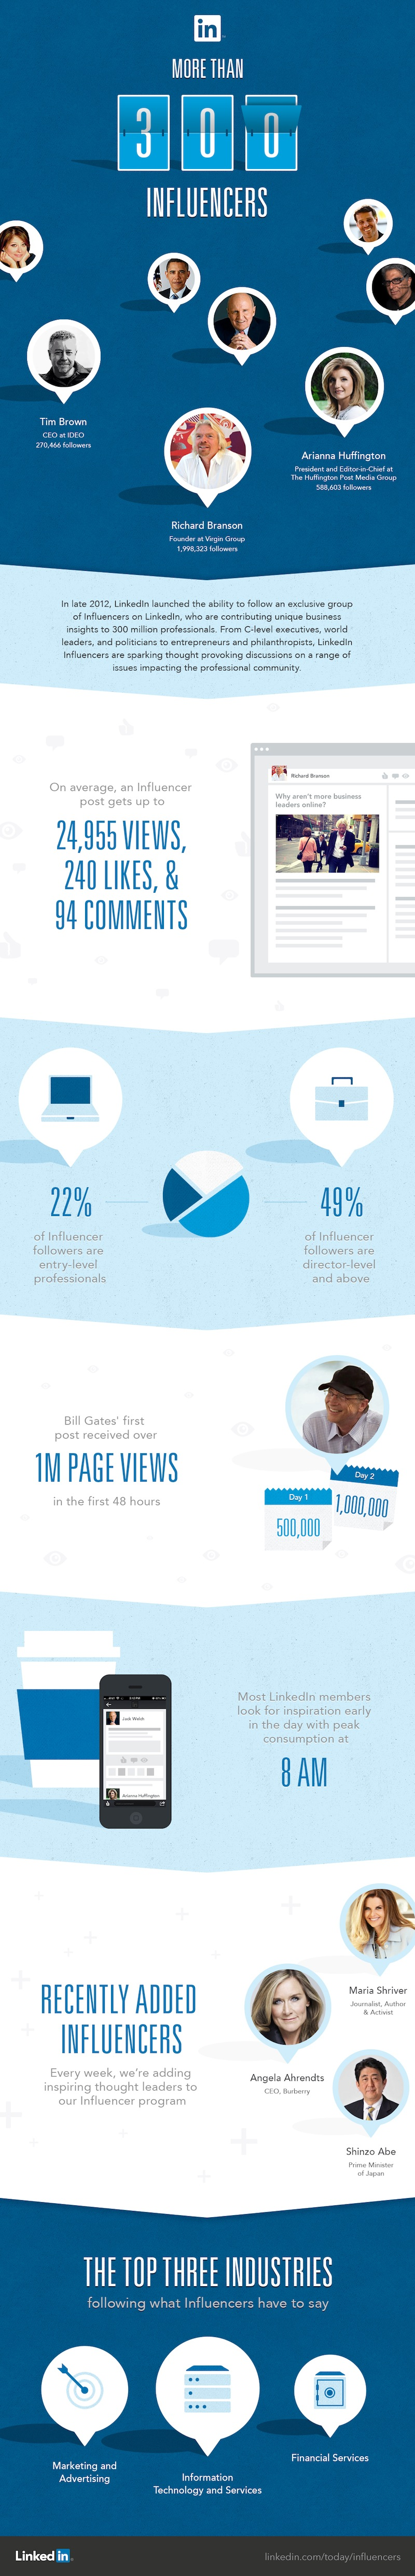 300 LinkedIn Influencers Infographic